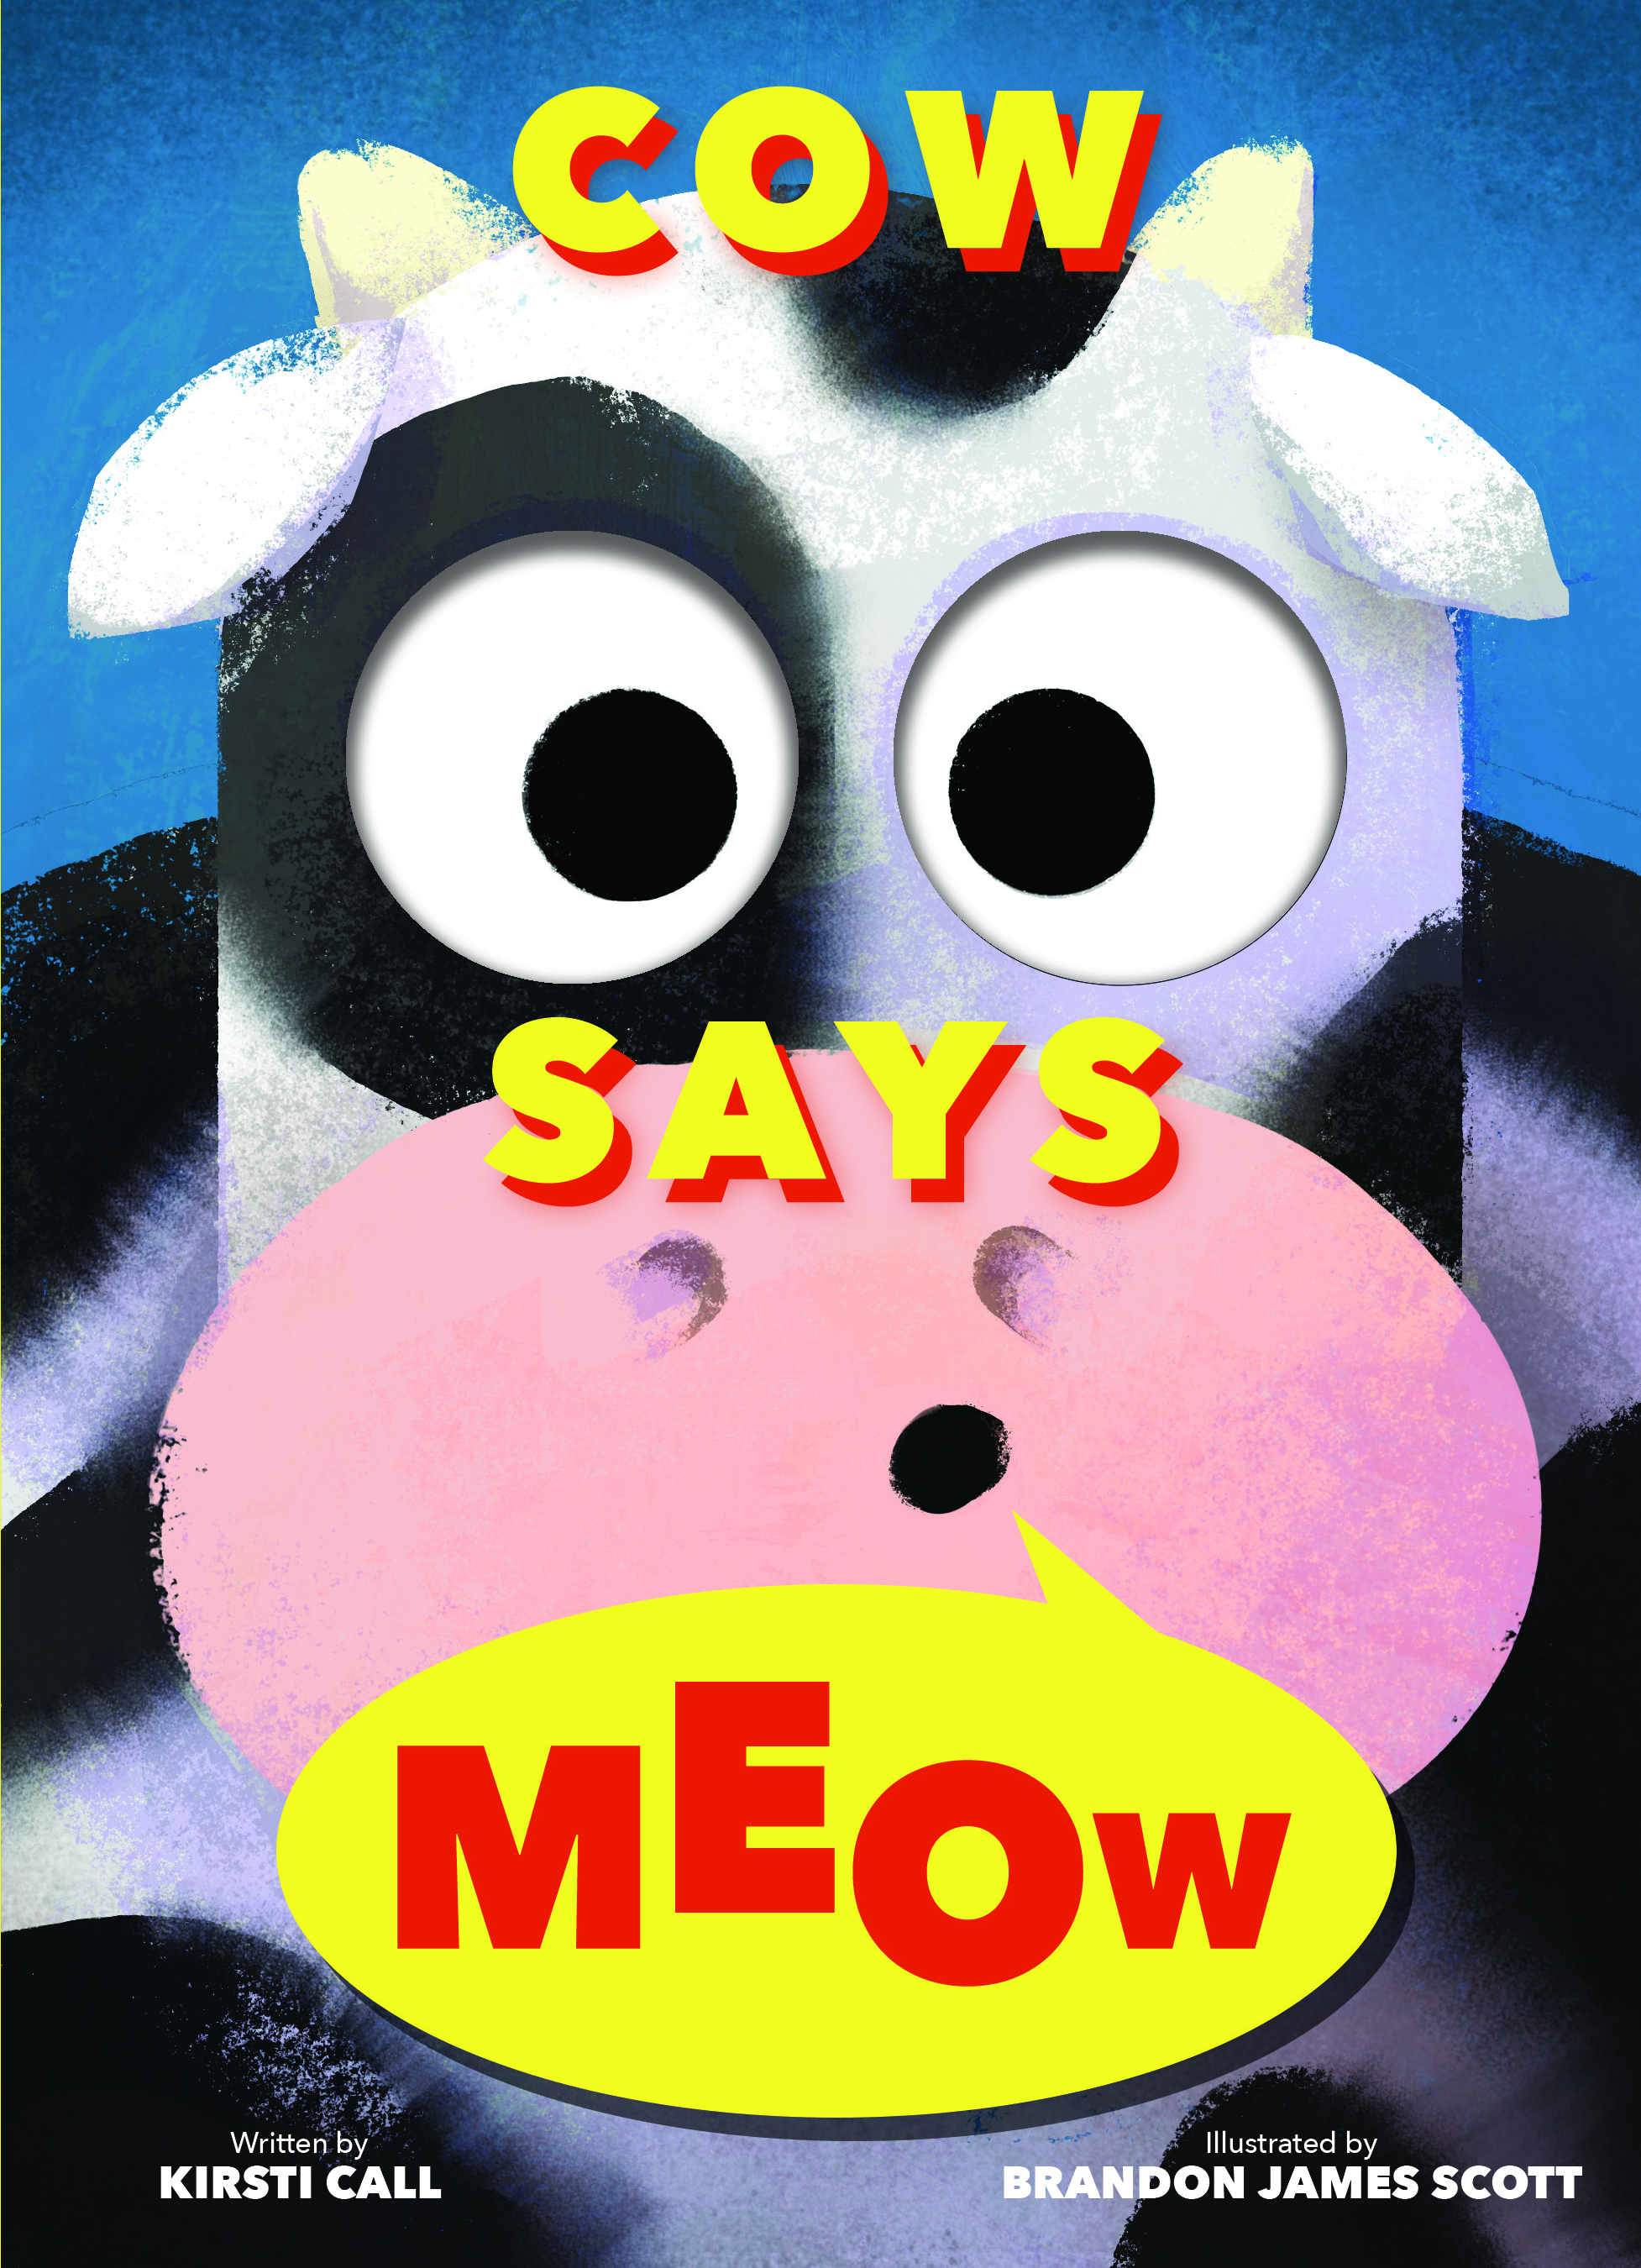 Call_COW-SAYS-MEOW_9780358423348_cover_print[1]